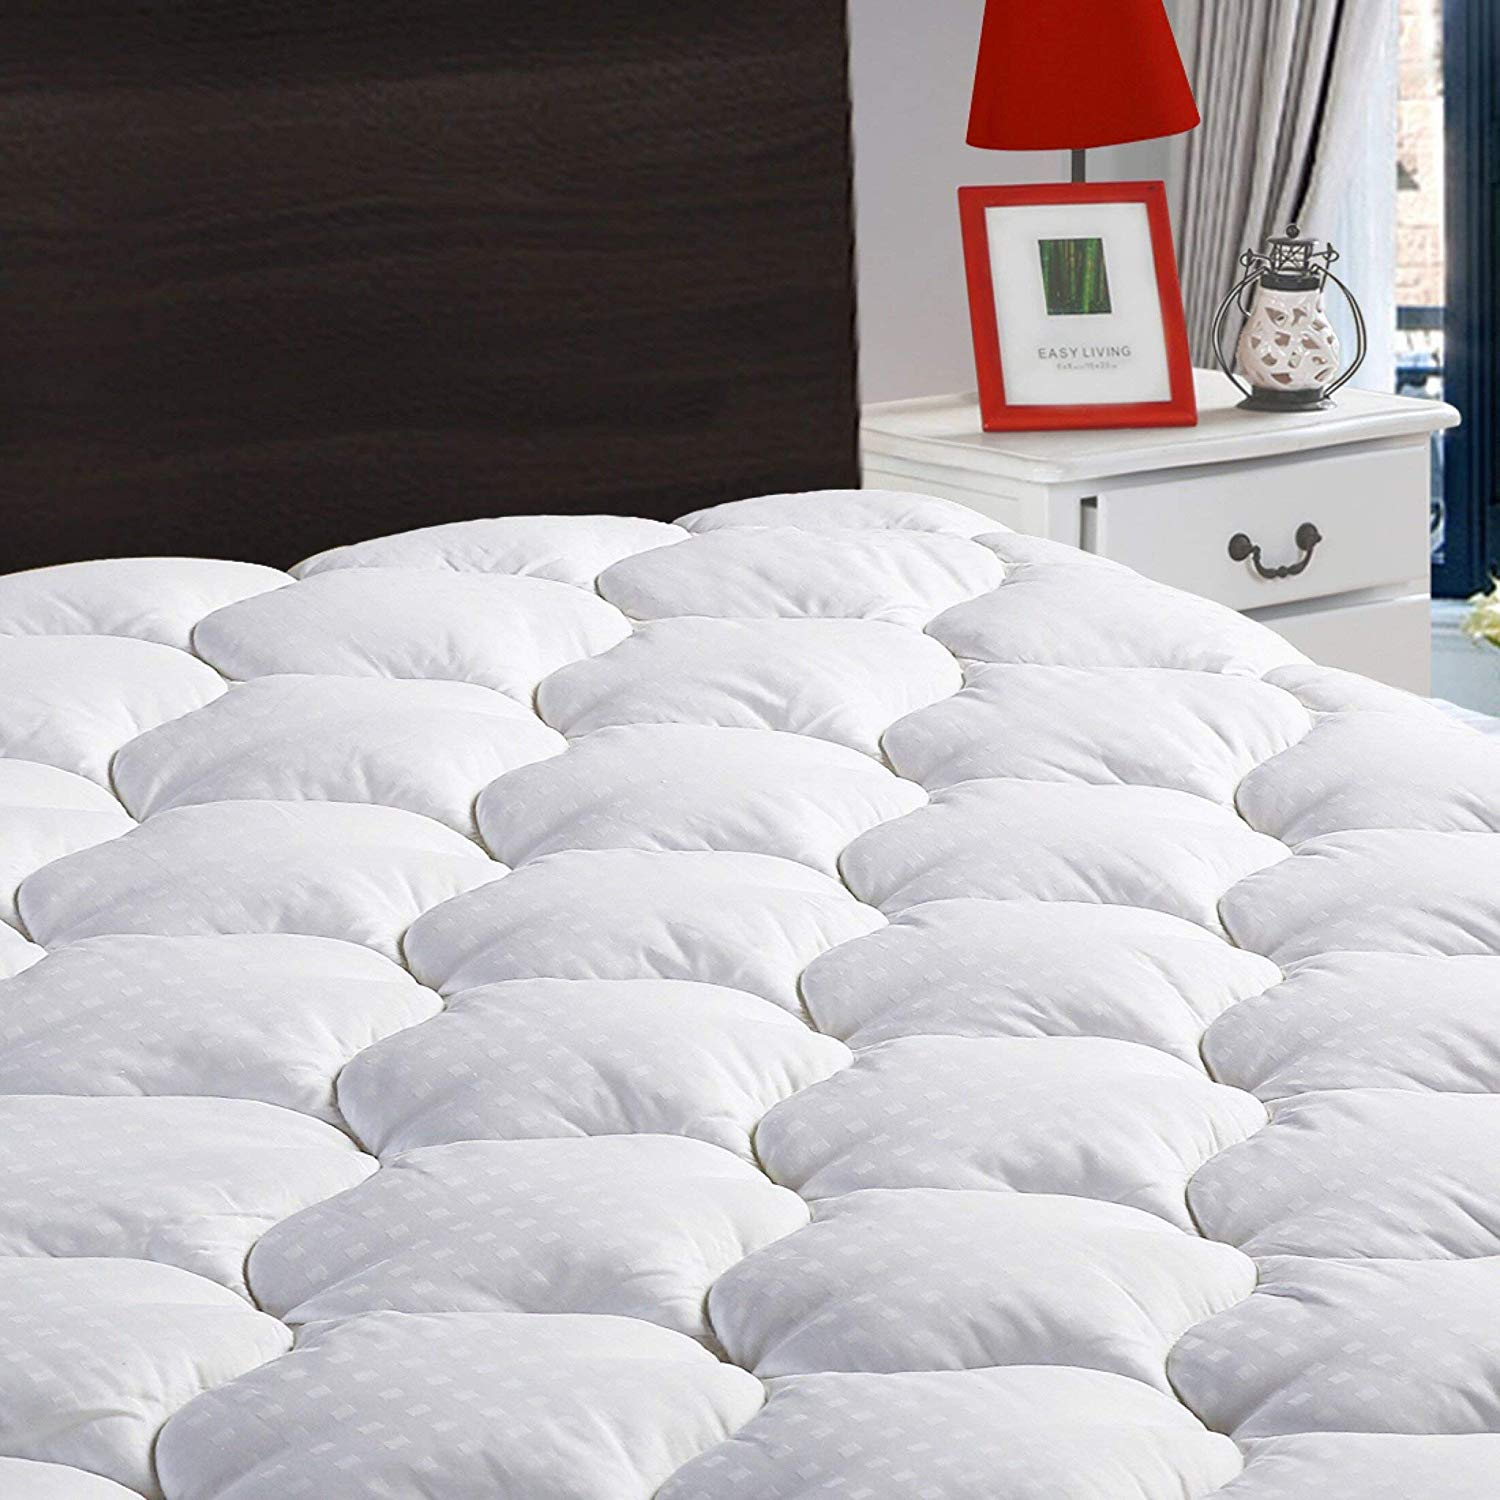 LEISURE TOWN Mattress Pad Cover